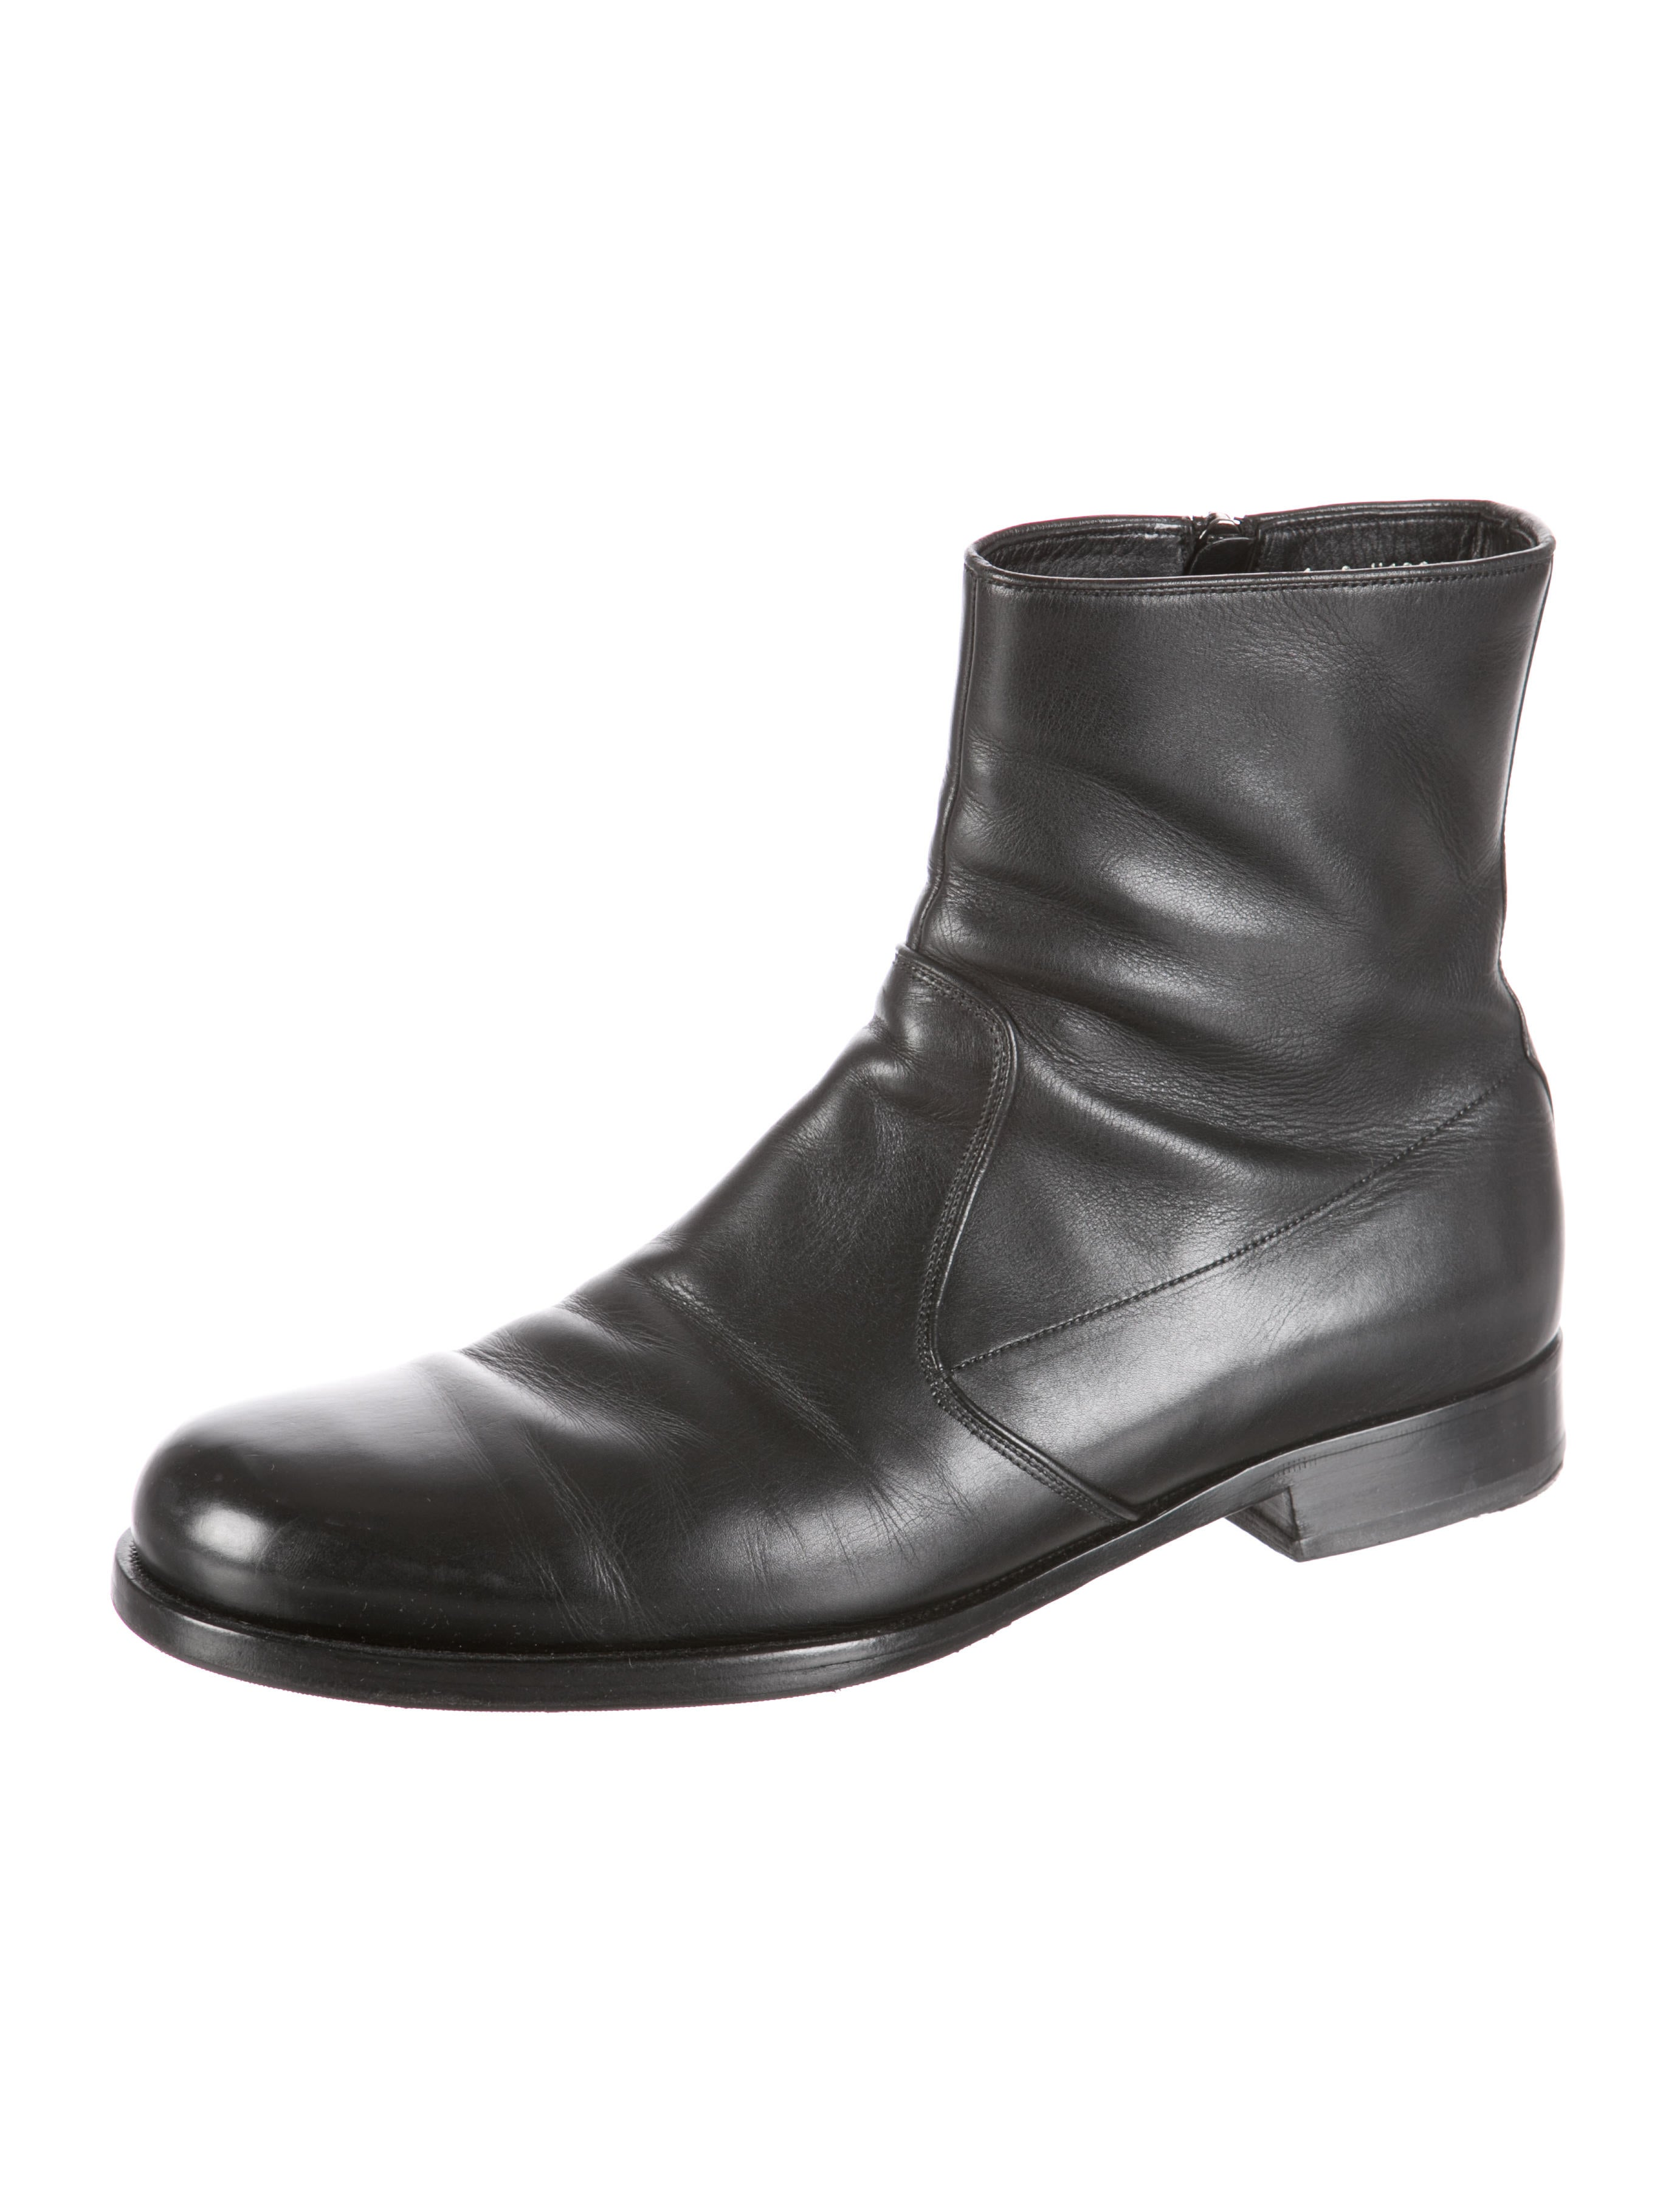 prada leather ankle boots mens shoes pra94567 the